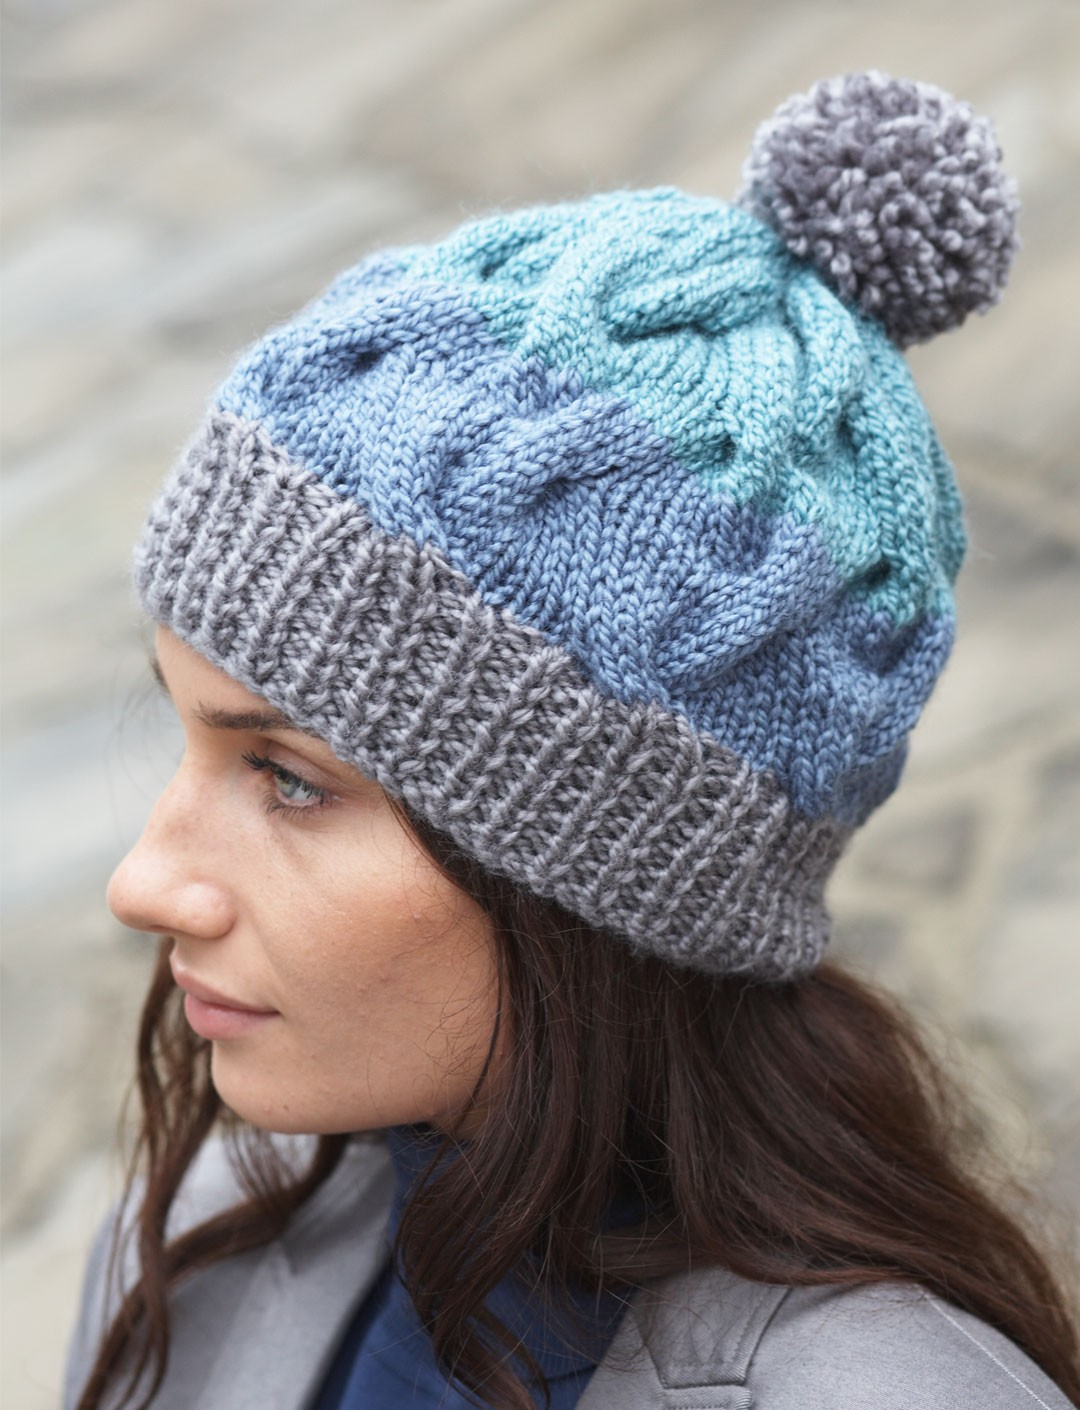 Sideways Knitting Patterns Free : Patons Striped Cable Hat, Knit Pattern Yarnspirations